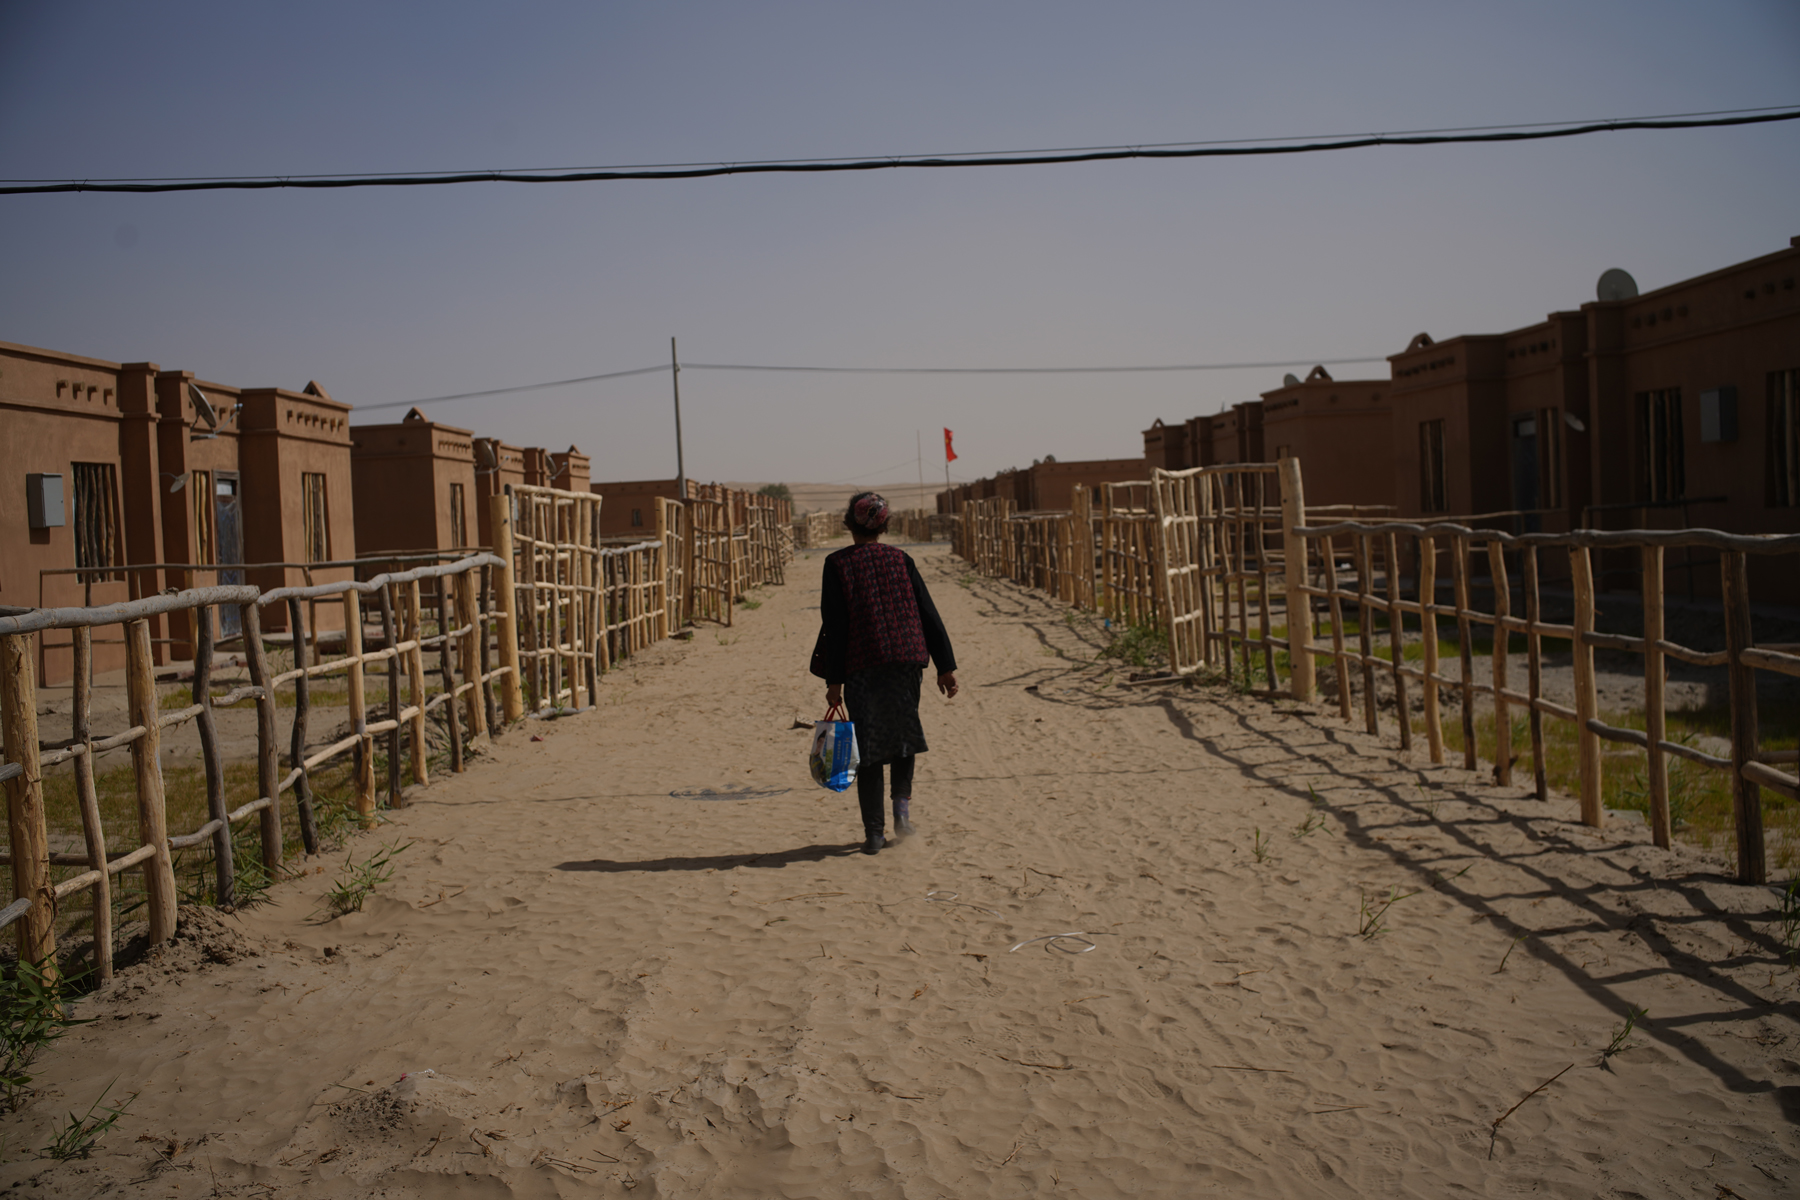 A Uighur woman walks through a new town constructed to house people relocated from a remote village, as part of a national poverty alleviation program, in Xinjiang Uighur Autonomous Region, October 4. Authorities in Xinjiang have incarcerated some one million Uighurs as part of a campaign of religious and cultural repression China's government construes as a method for preventing terrorism. (Chen Jie for ChinaFile)